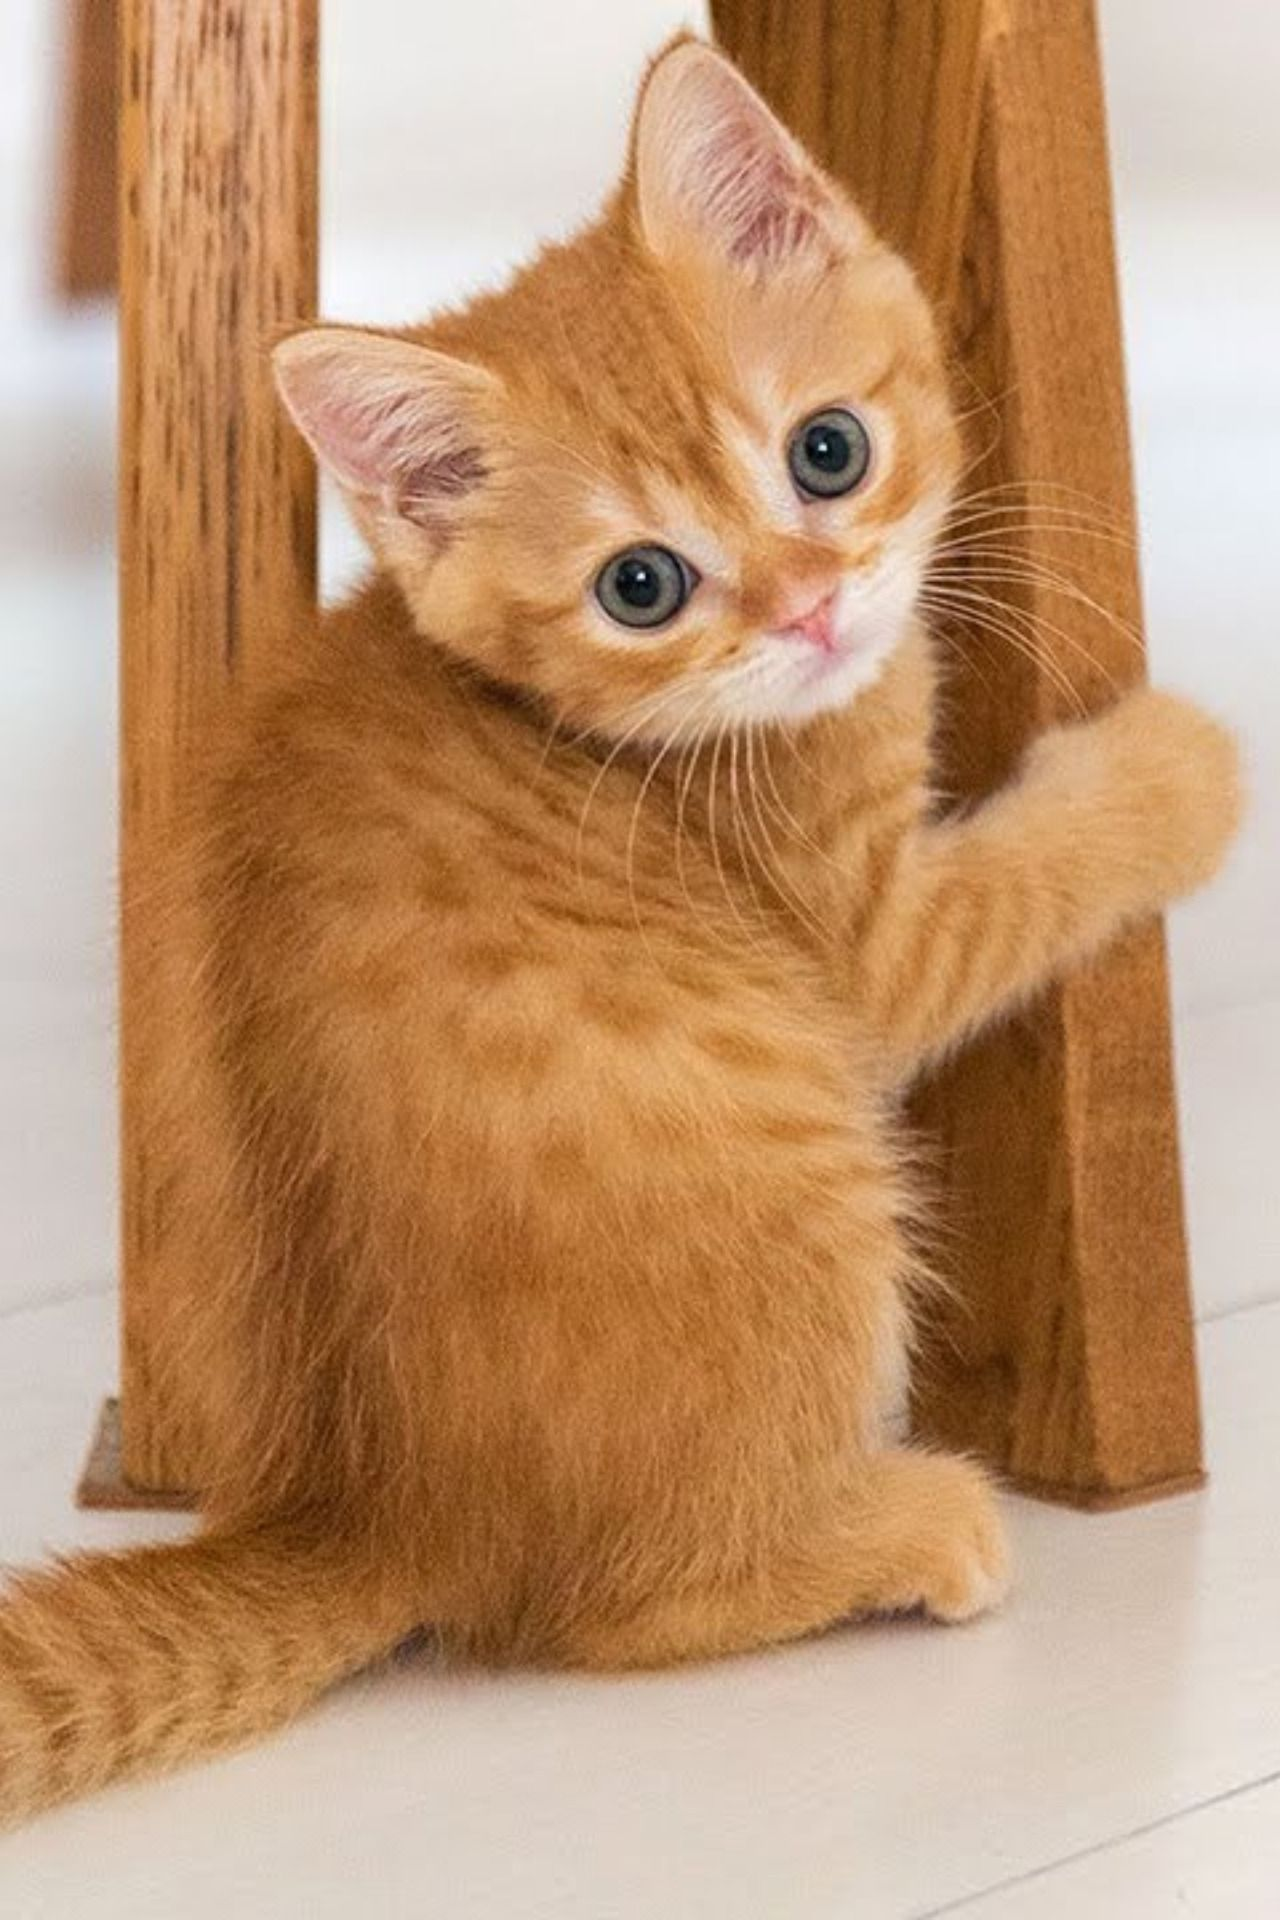 Pin By Susan Kahle On Here Kitty Kitty Cute Cats Cute Cats And Kittens Cute Baby Animals